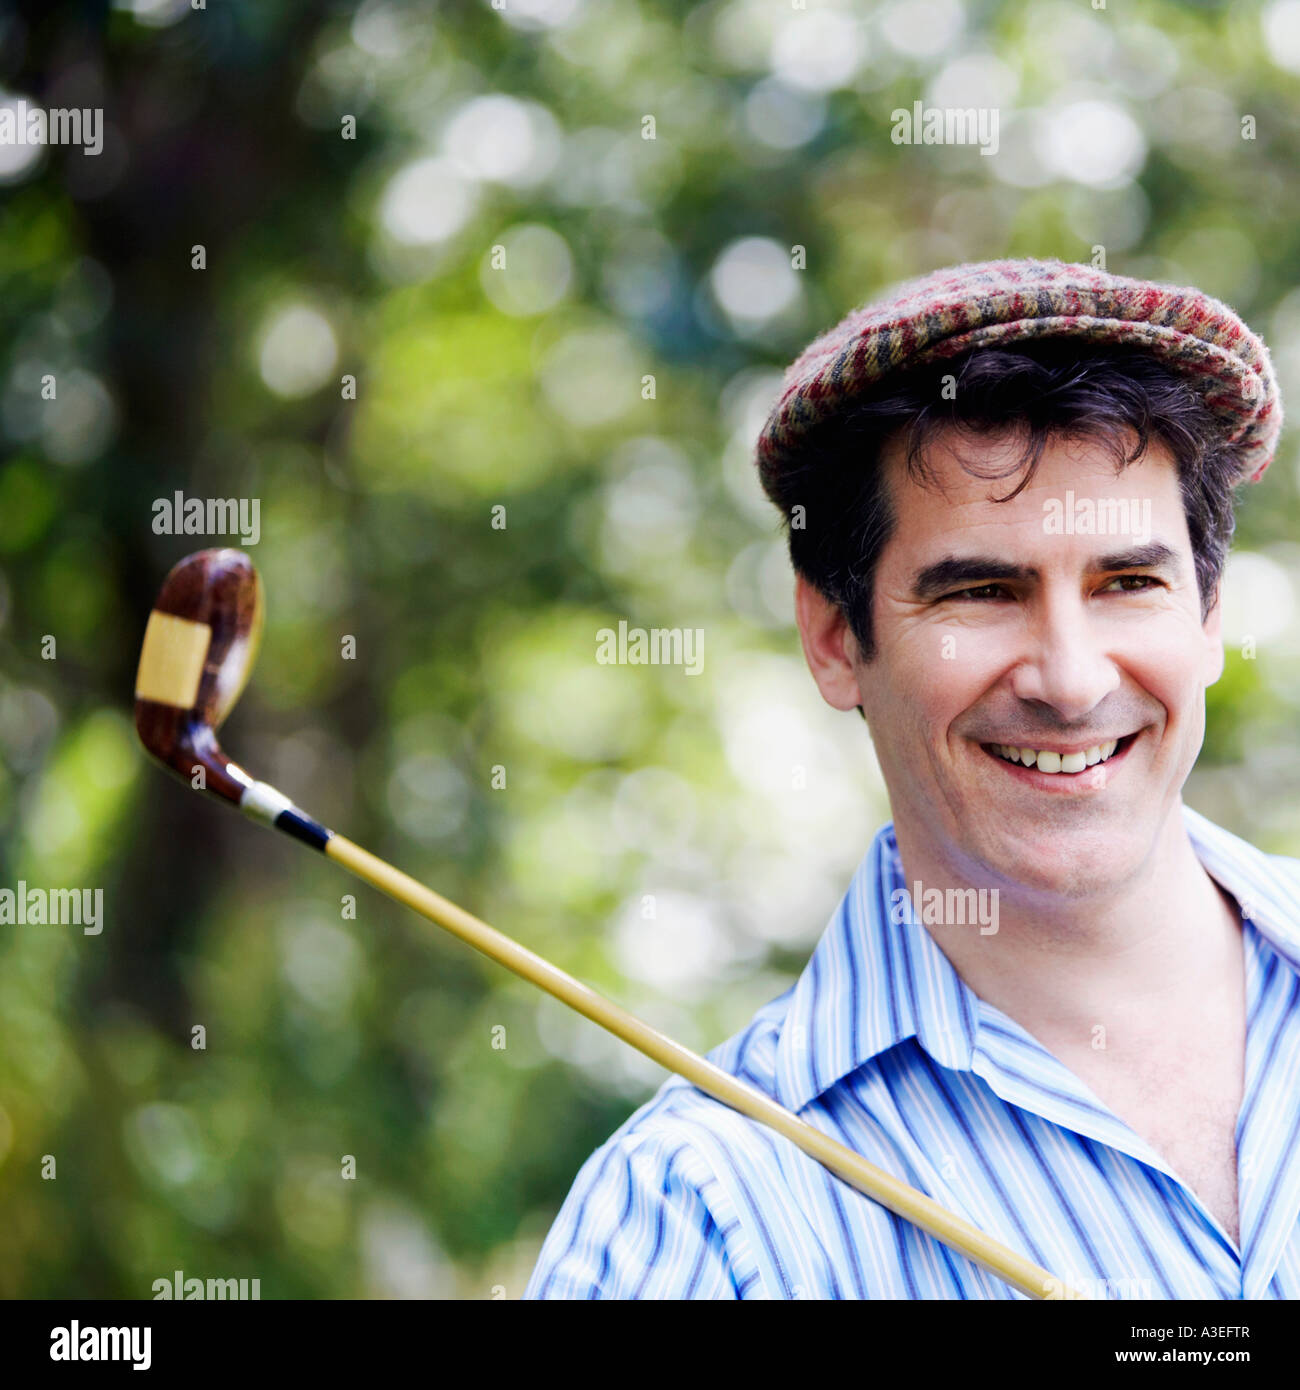 Close-up of a mature man with a golf club and smiling - Stock Image